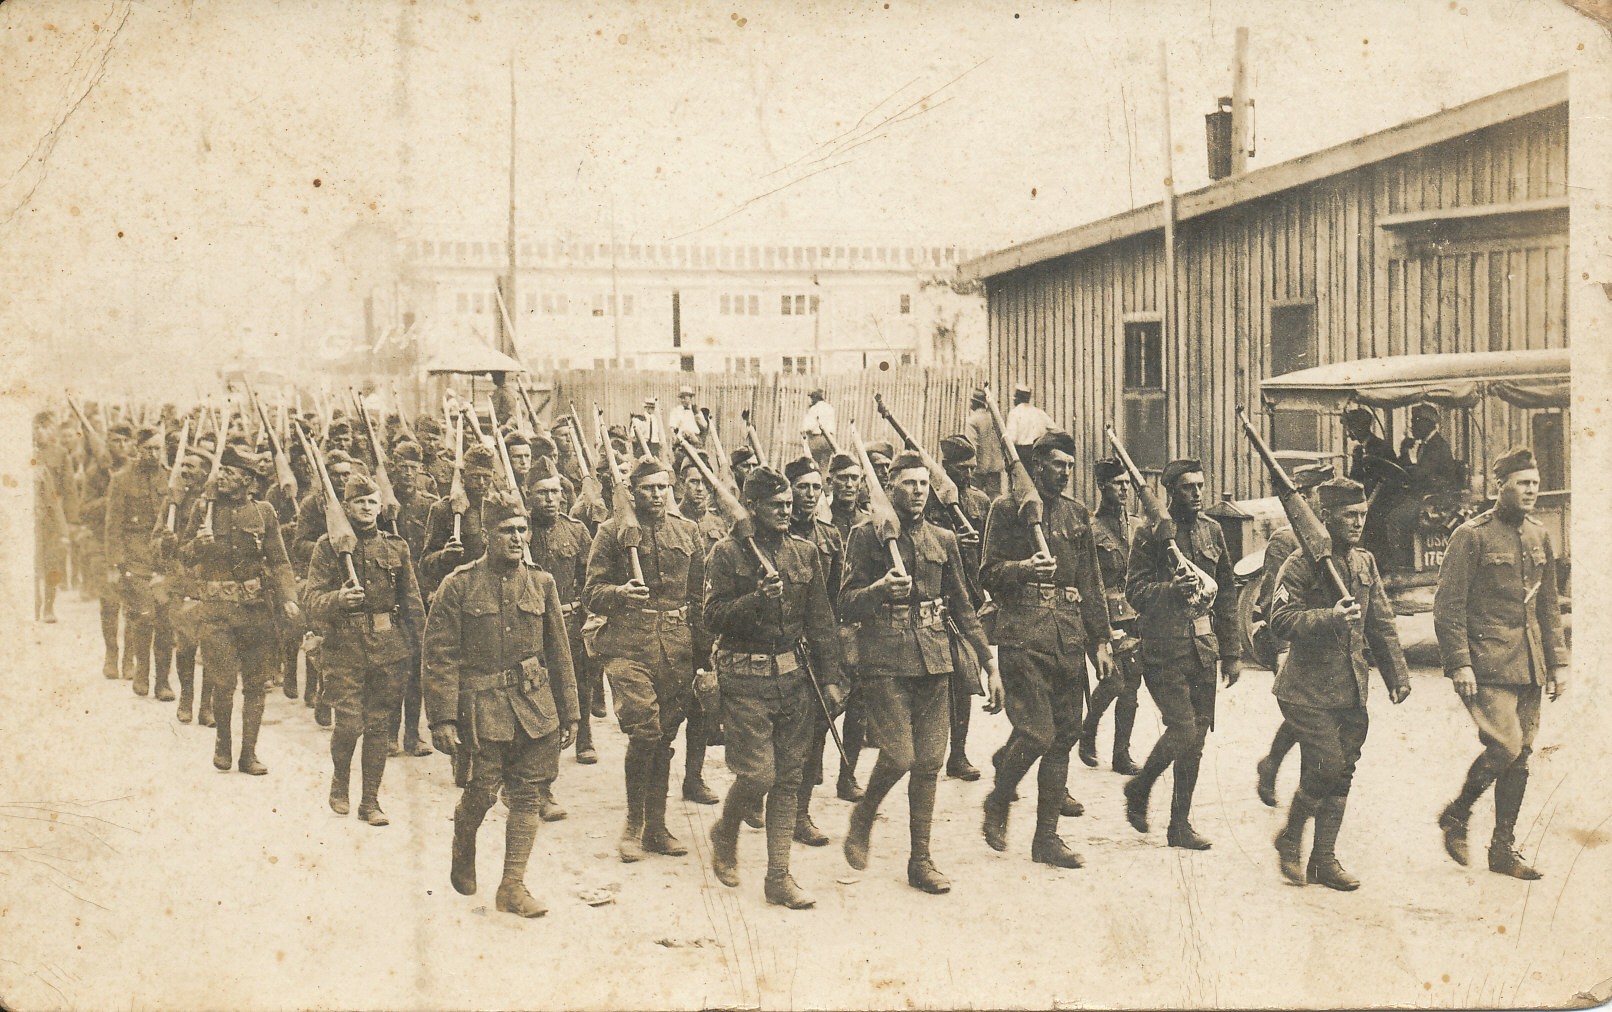 black and white photo of men marching with long guns